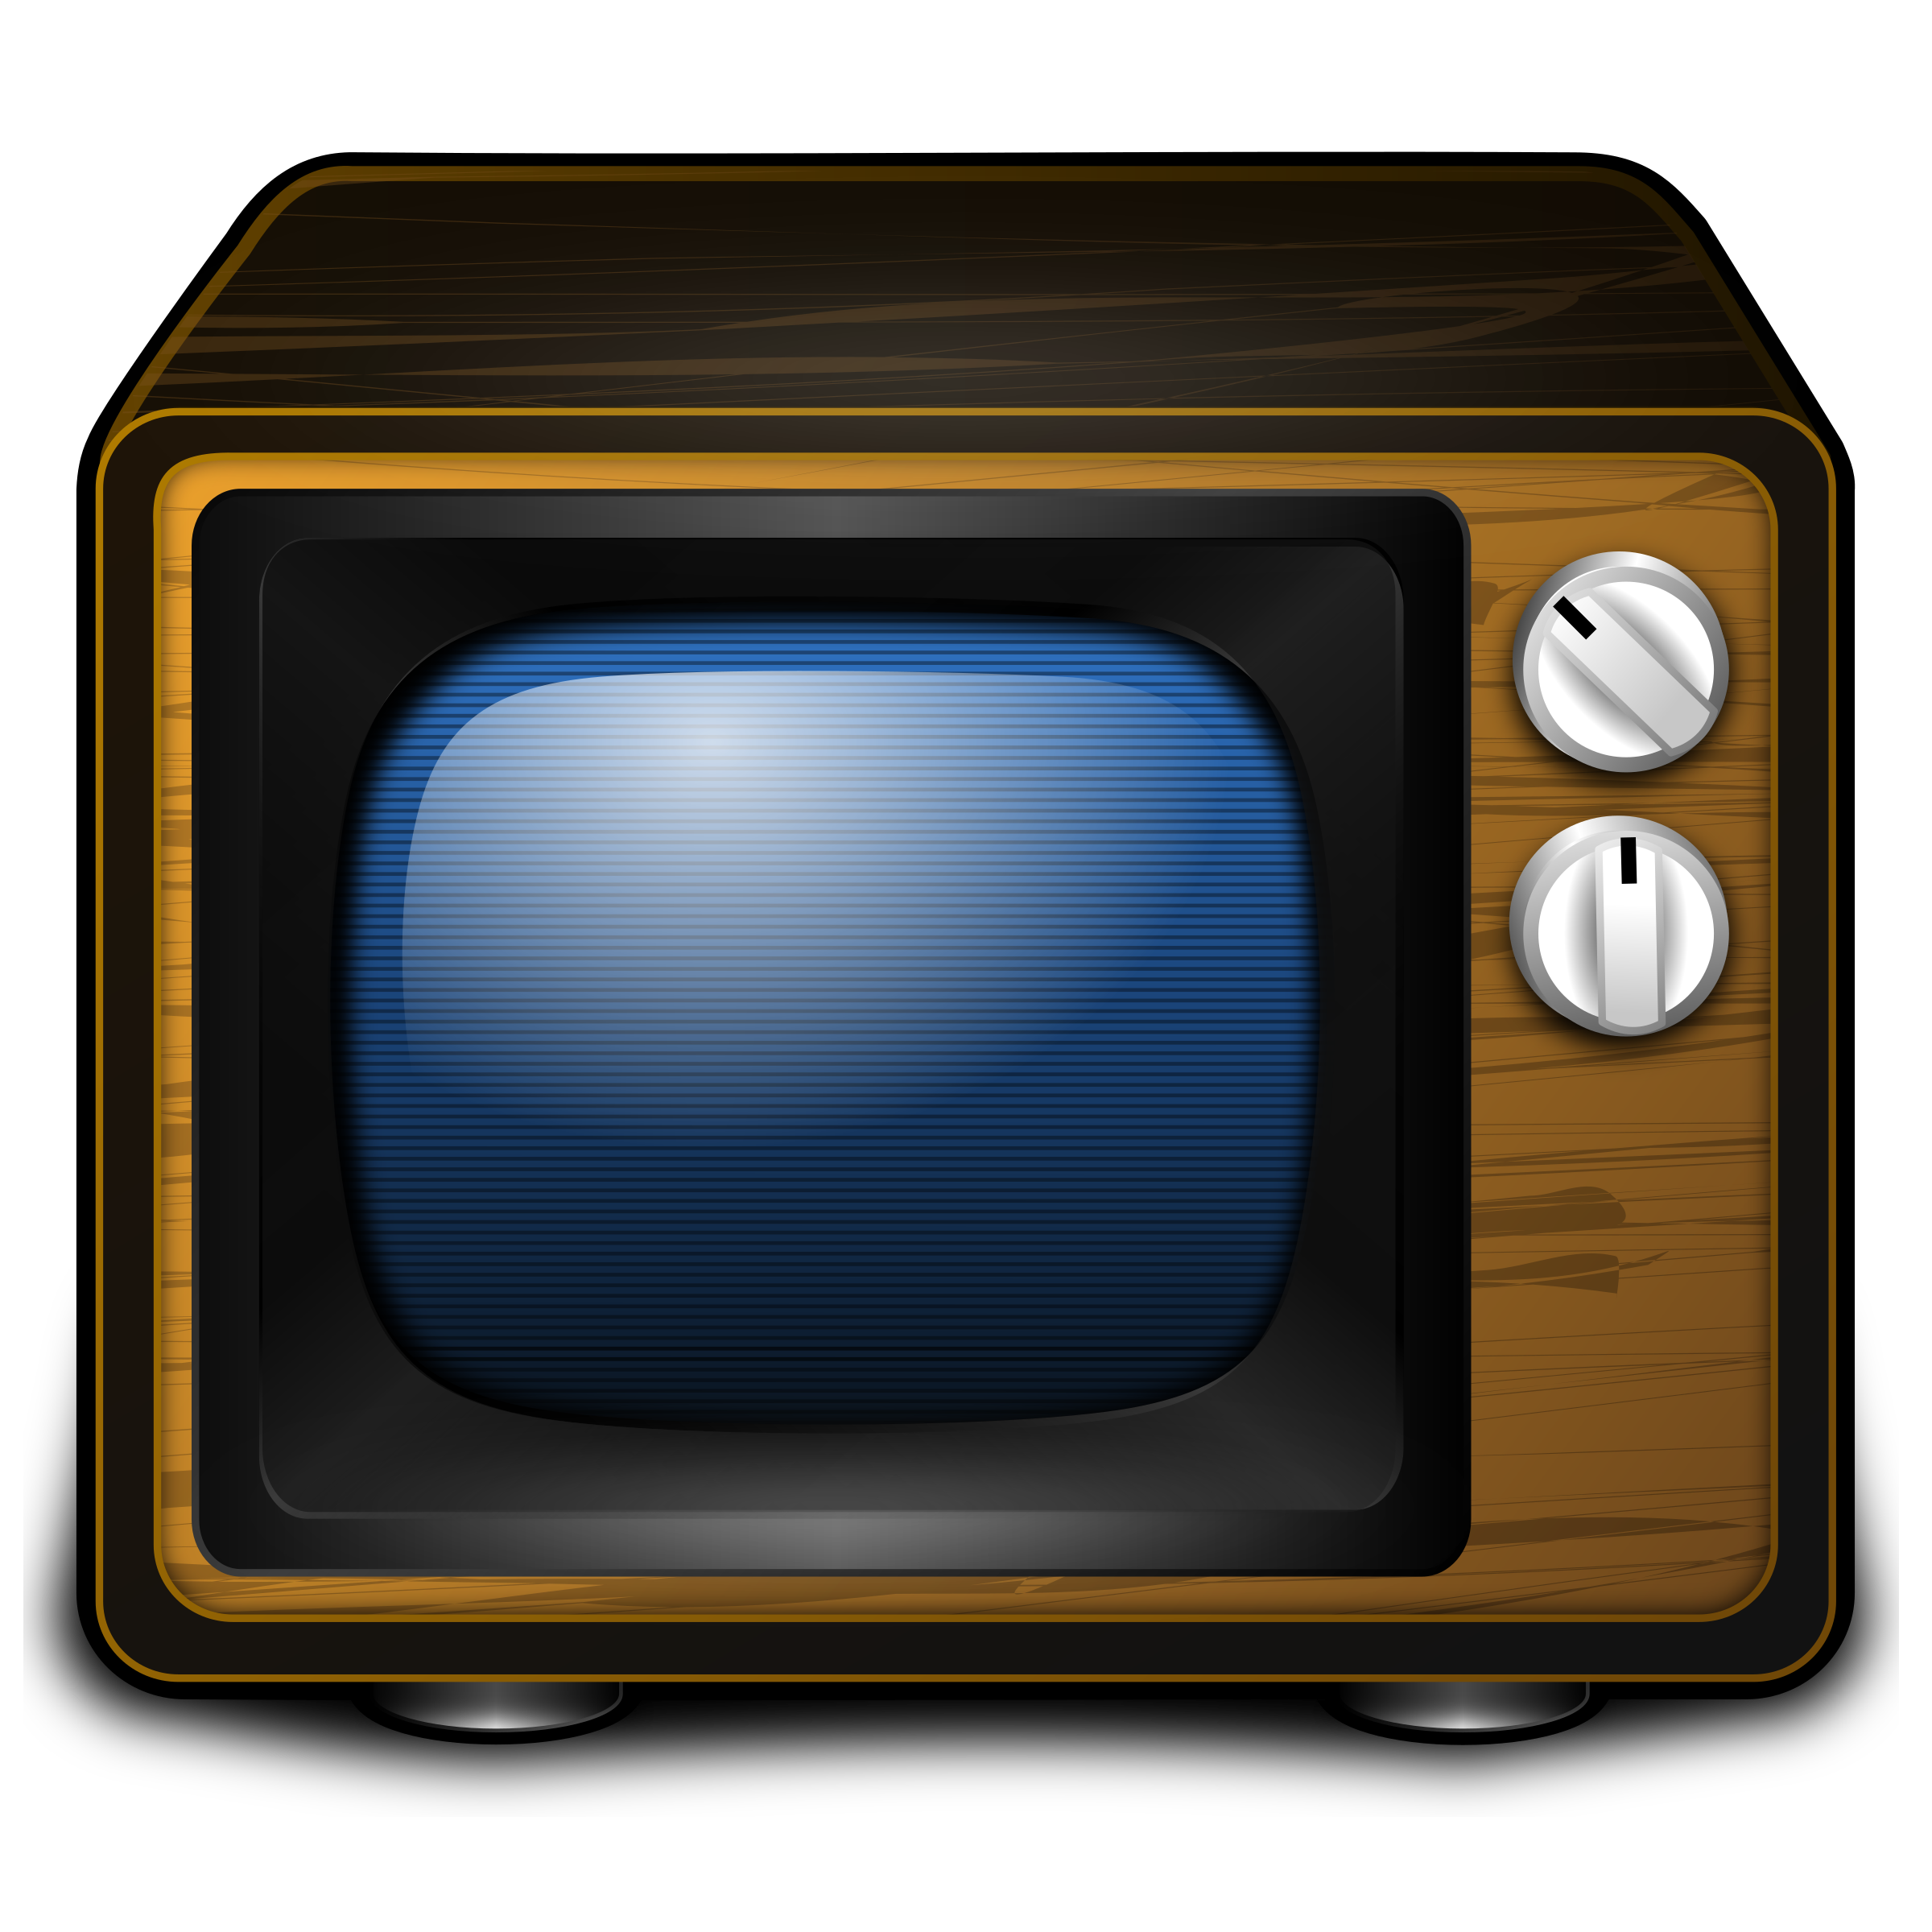 Old school clipart graphic free library Clipart - TV graphic free library